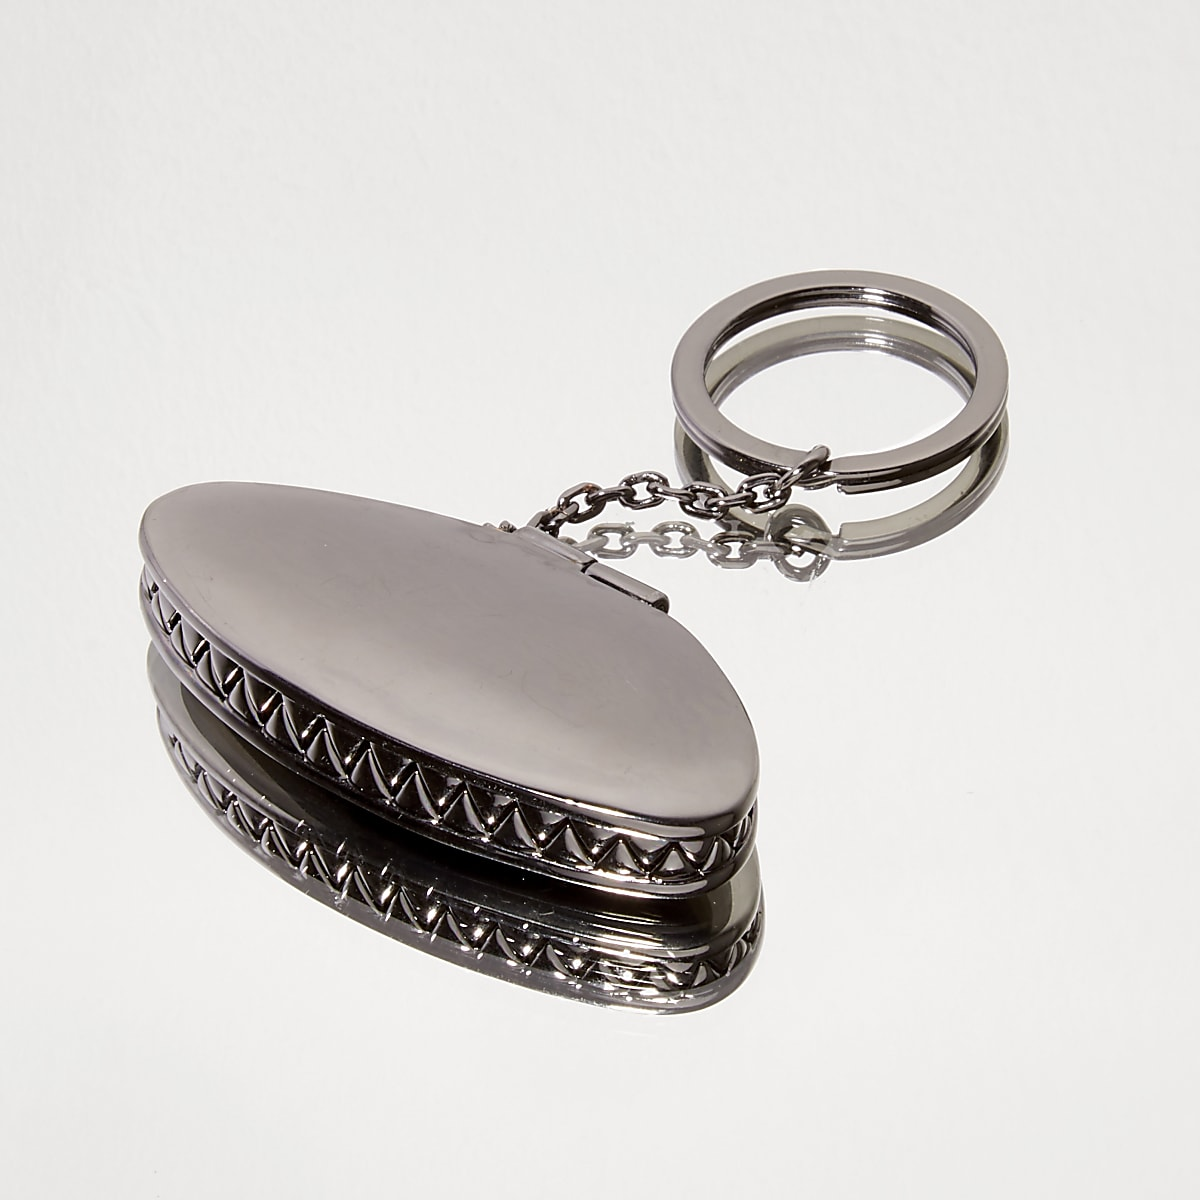 Gunmetal Design Forum grey fly trap keyring